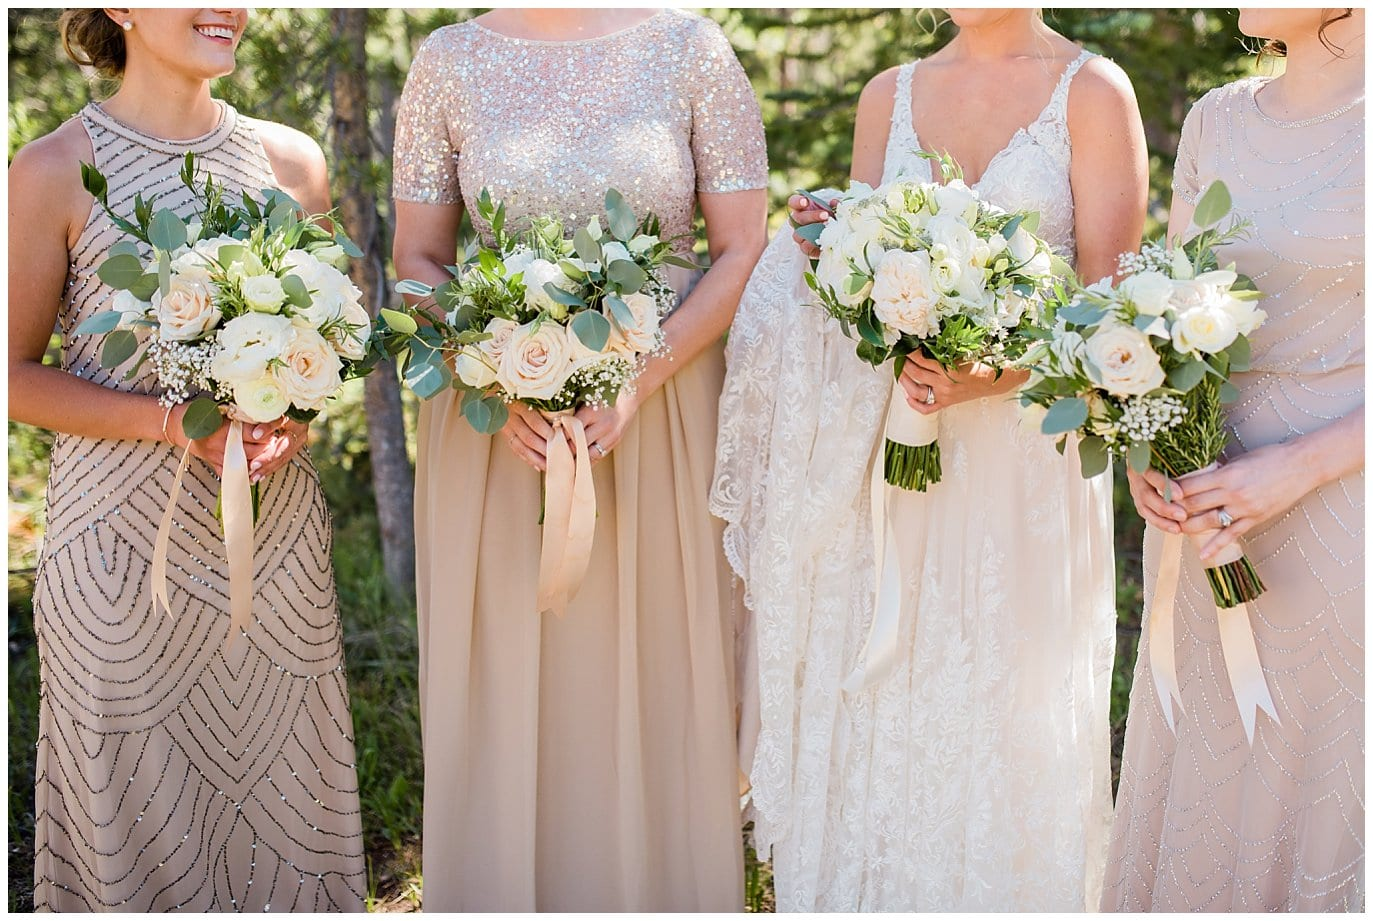 neutral elegant wedding flowers and champagne bridesmaids dresses at Summer Piney River Ranch wedding by Vail wedding photographer Jennie Crate, Photographer